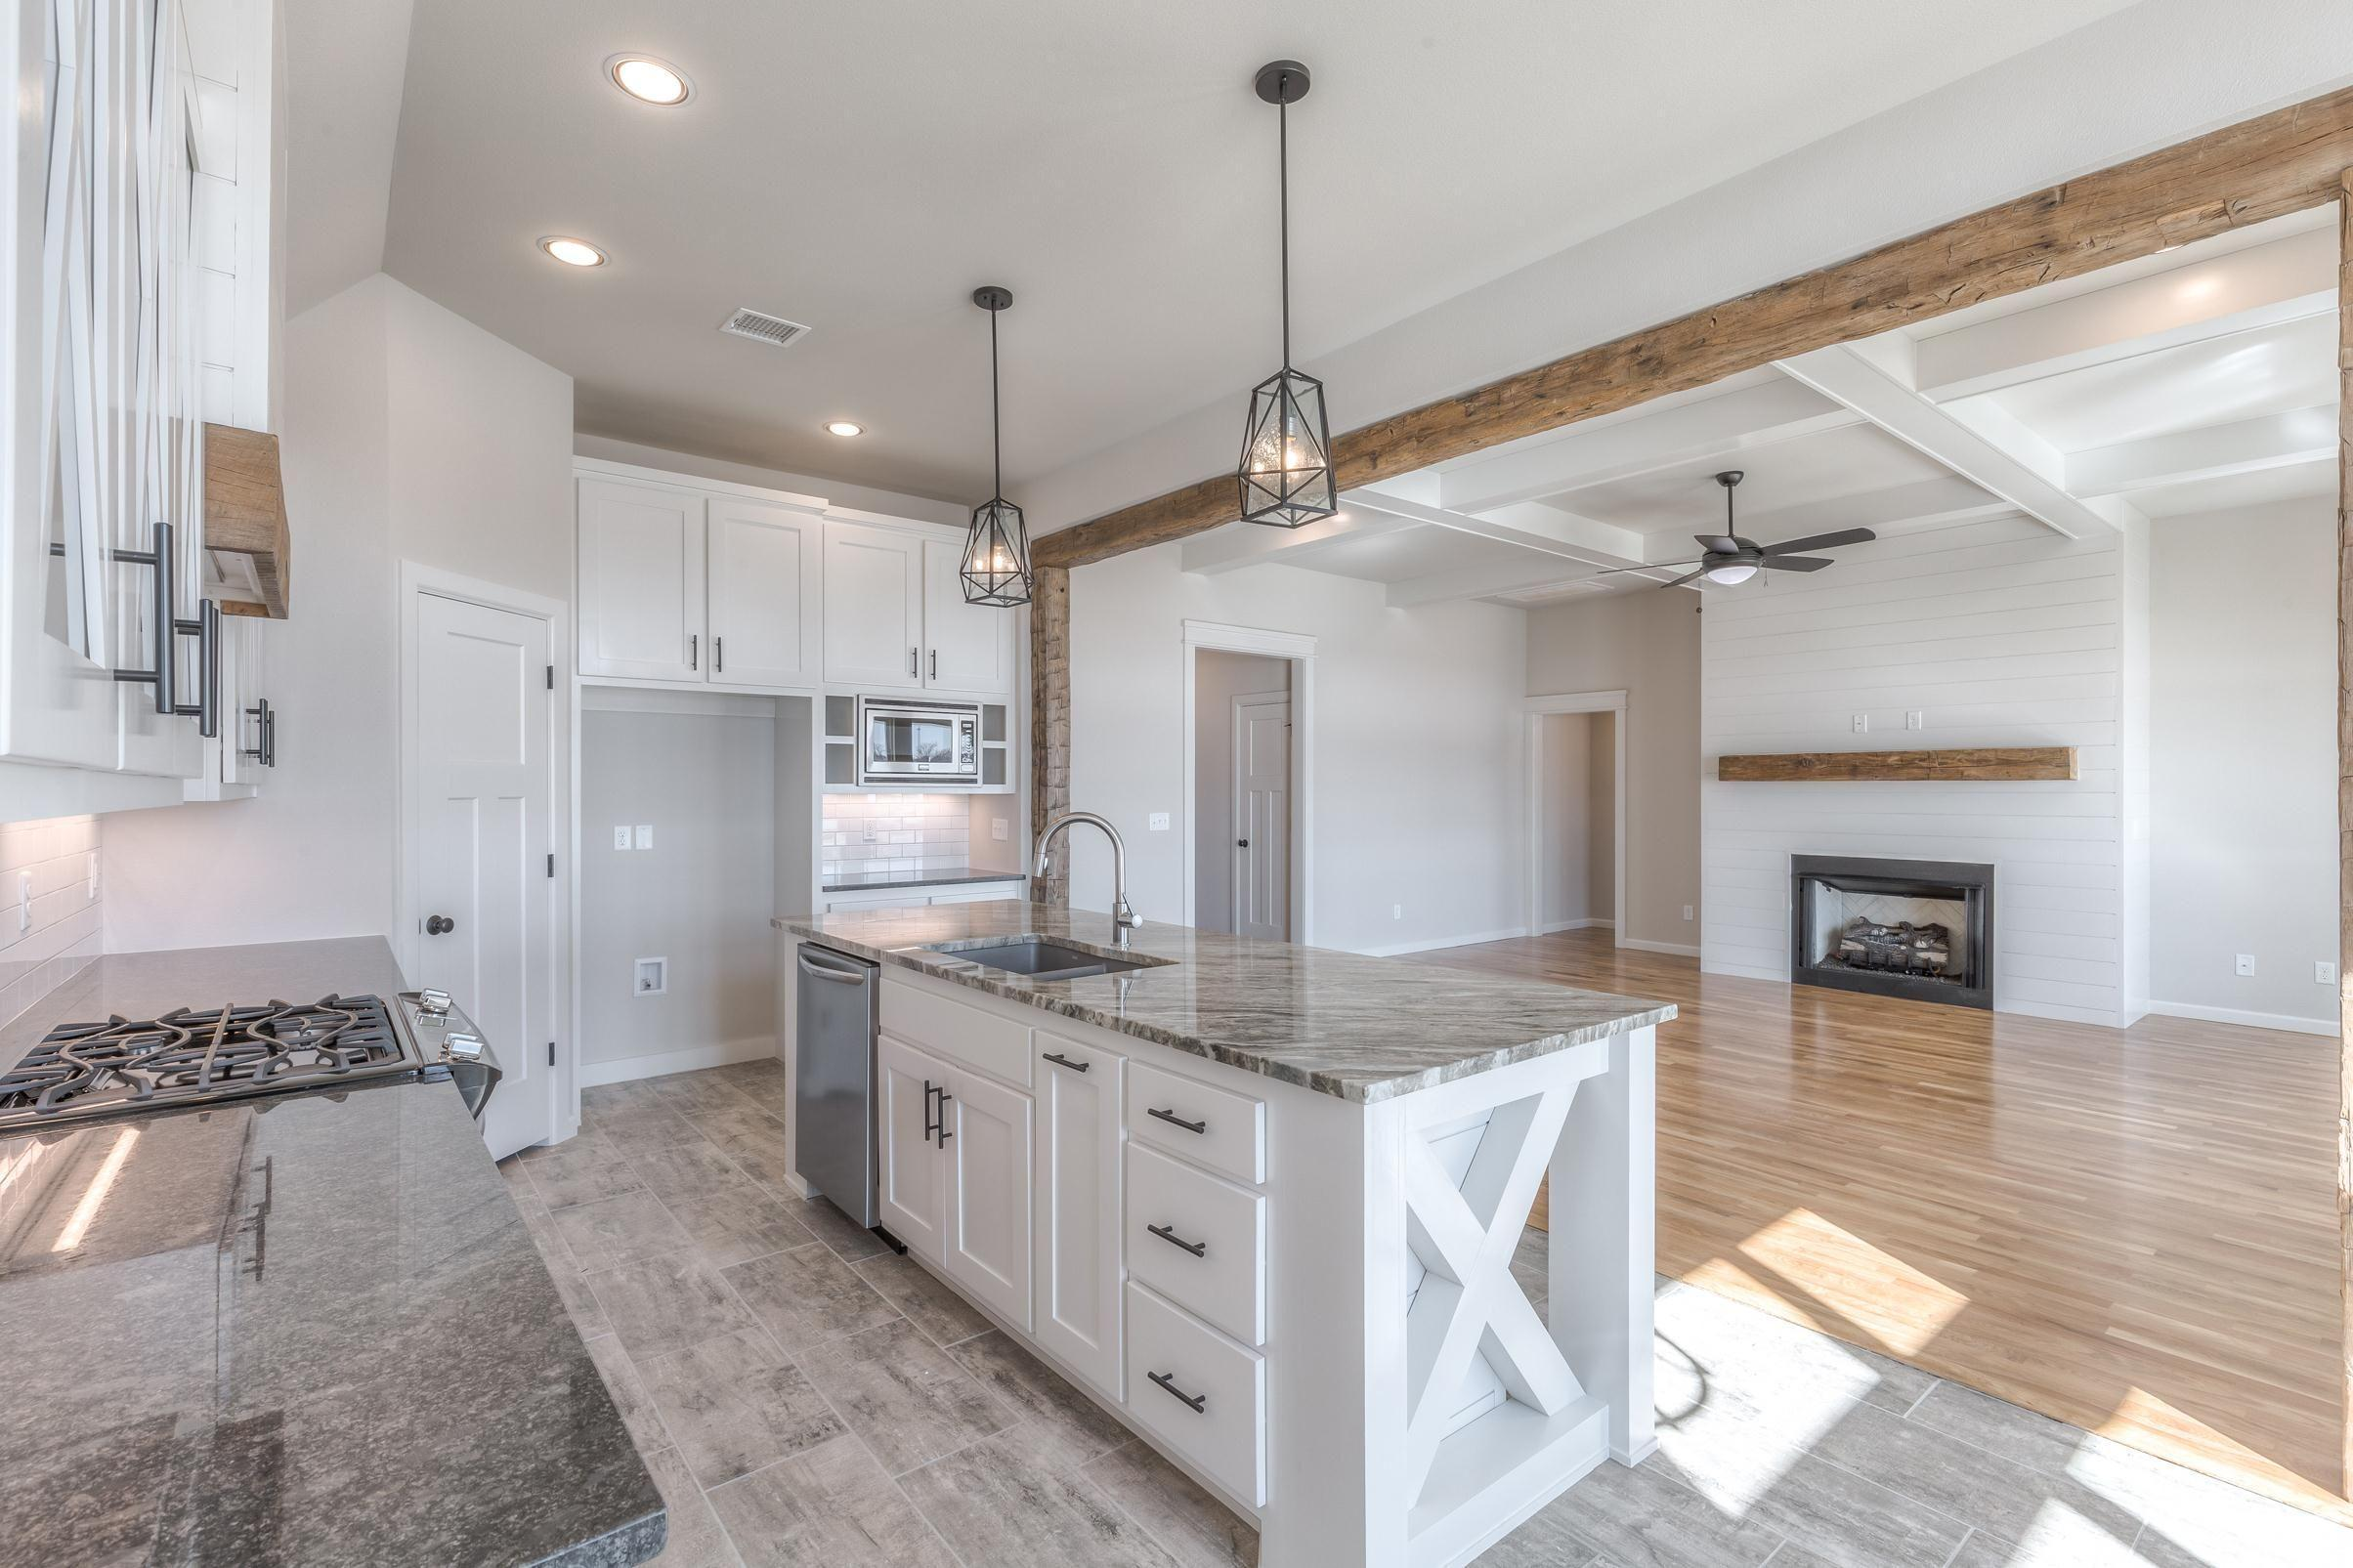 Kitchen featured in the Walker FH By Concept Builders, Inc in Tulsa, OK